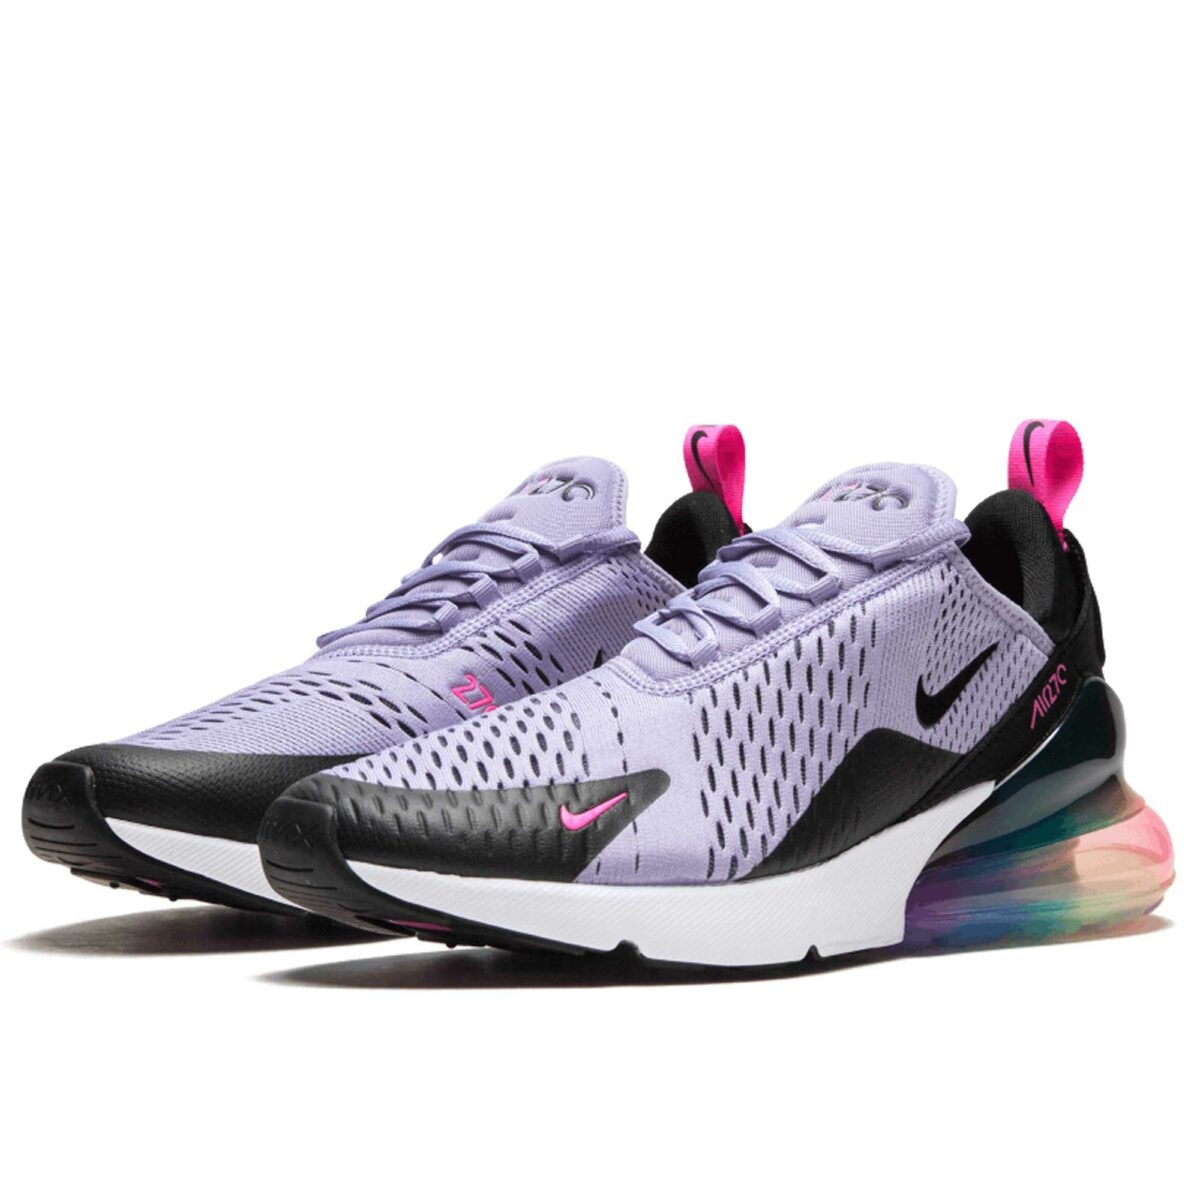 nike air max 270 purple black AR0344_500 купить